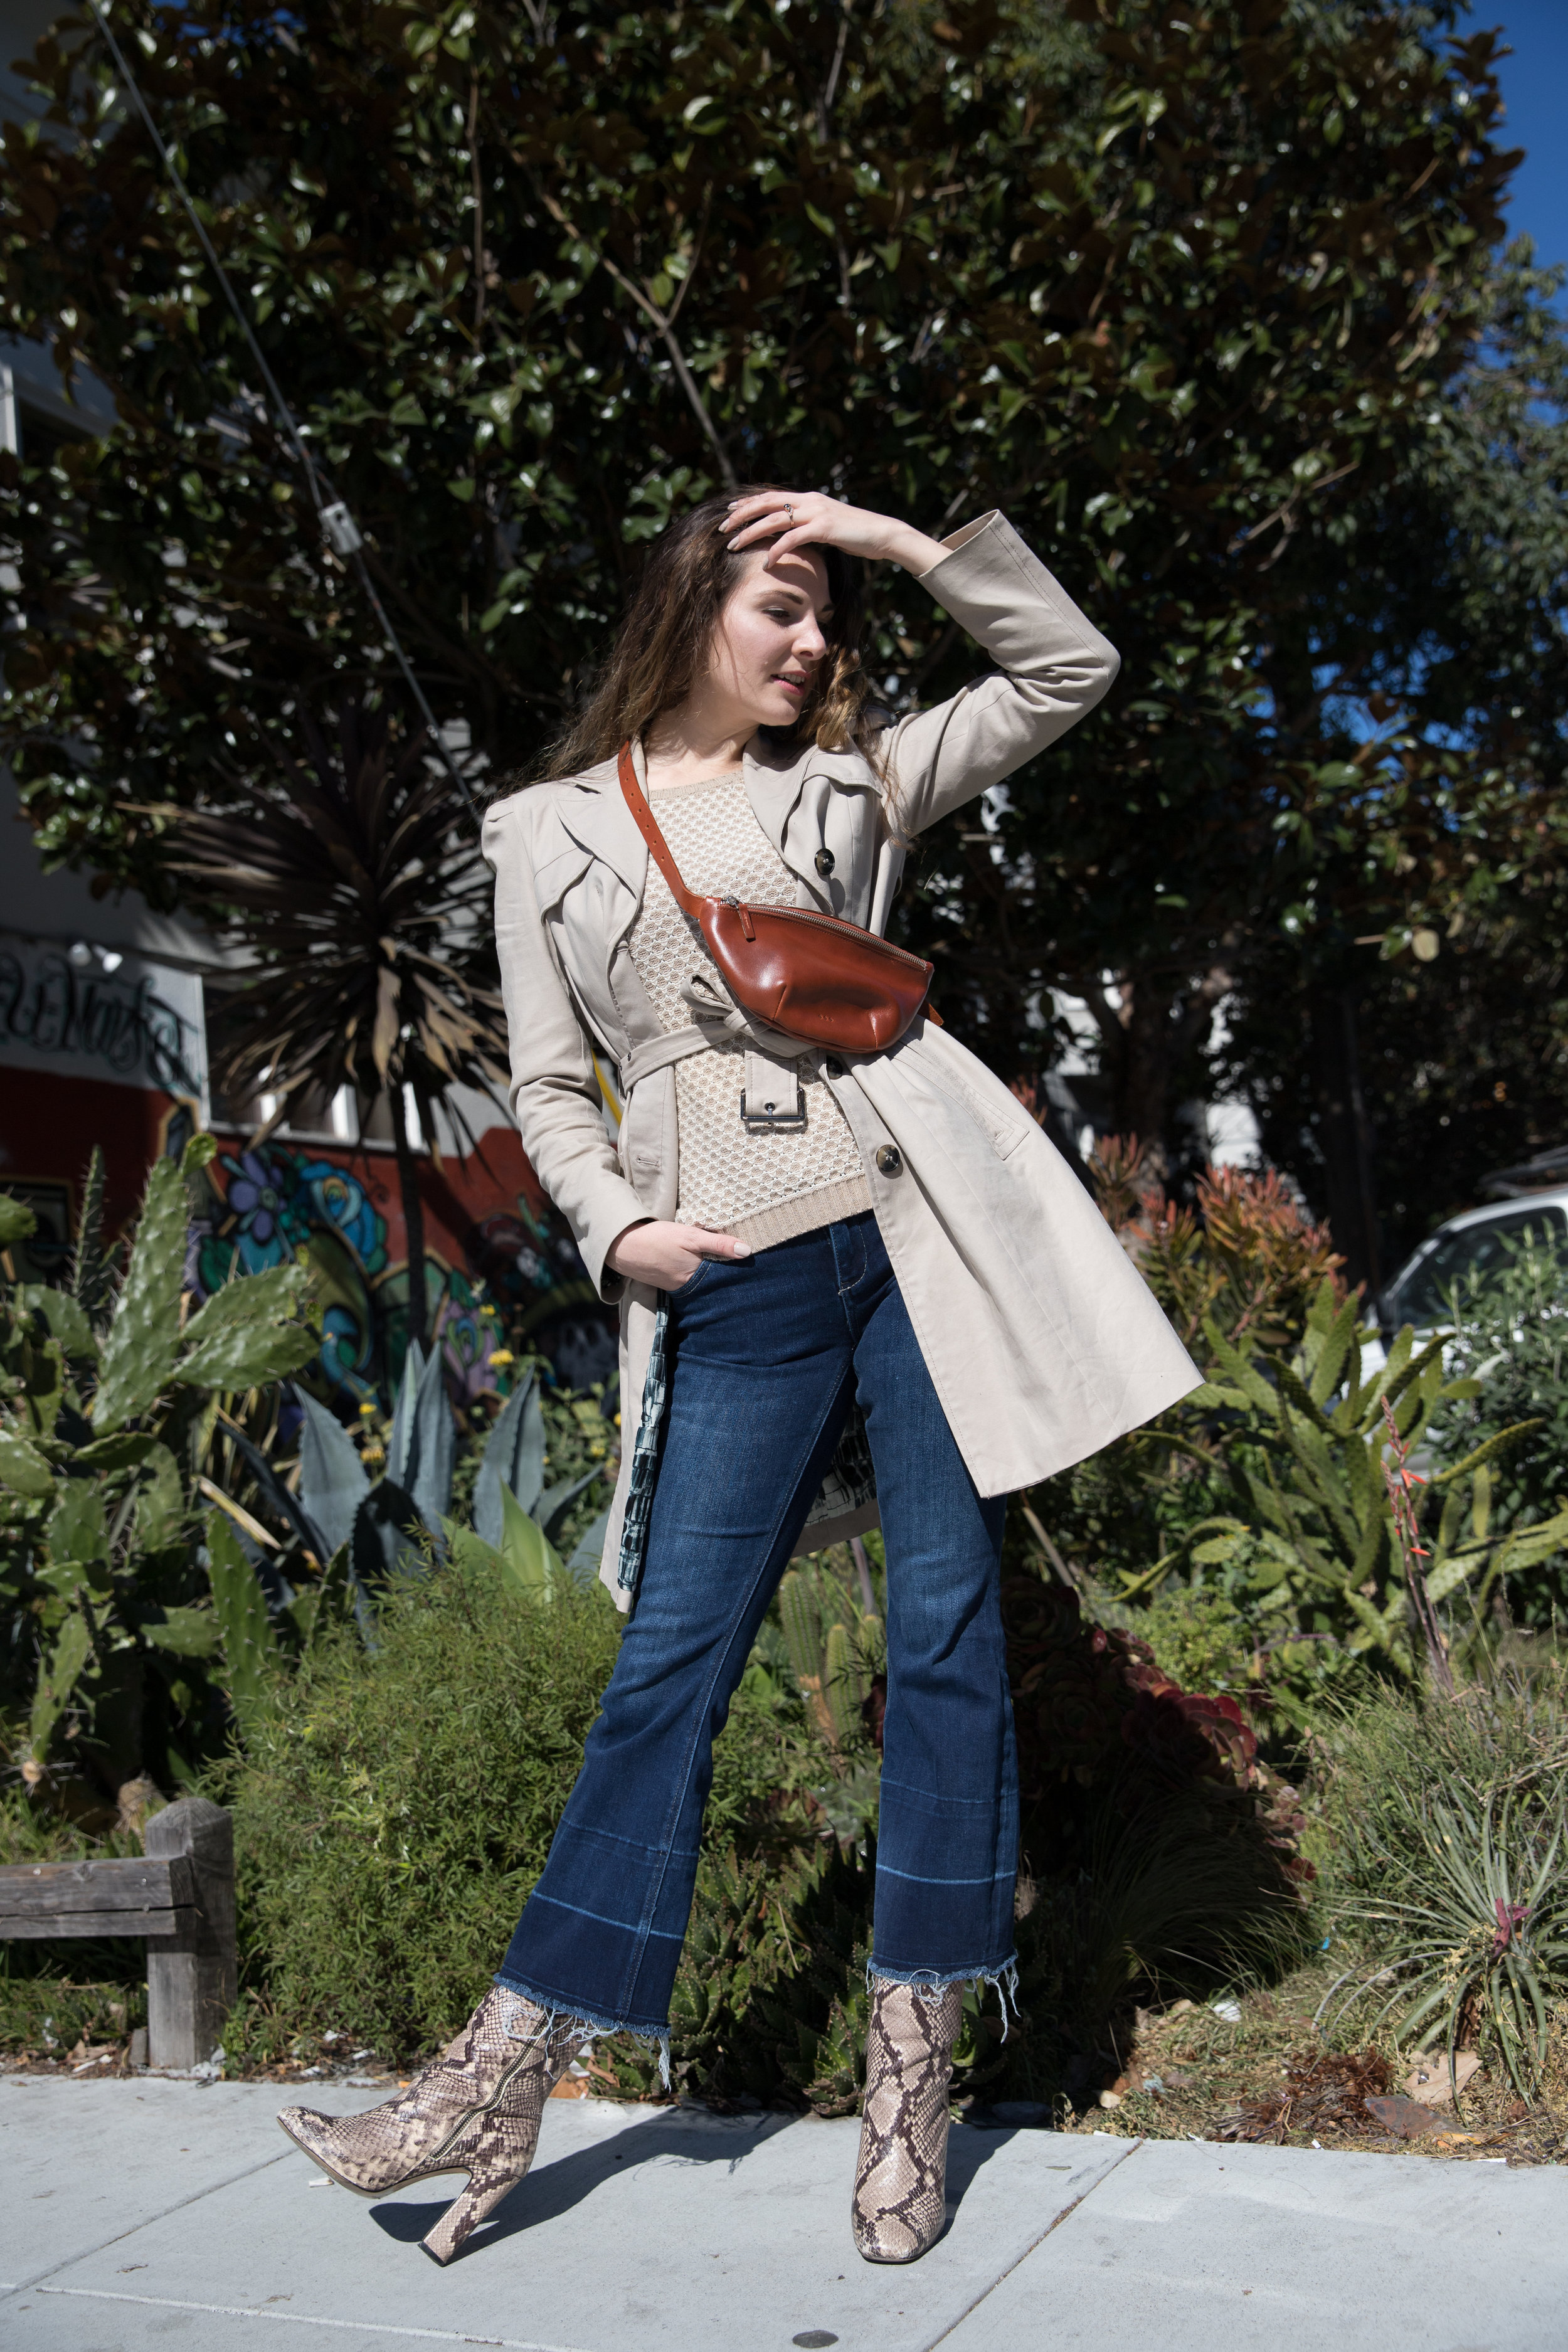 The Modern Fanny Pack - the Sling Bag